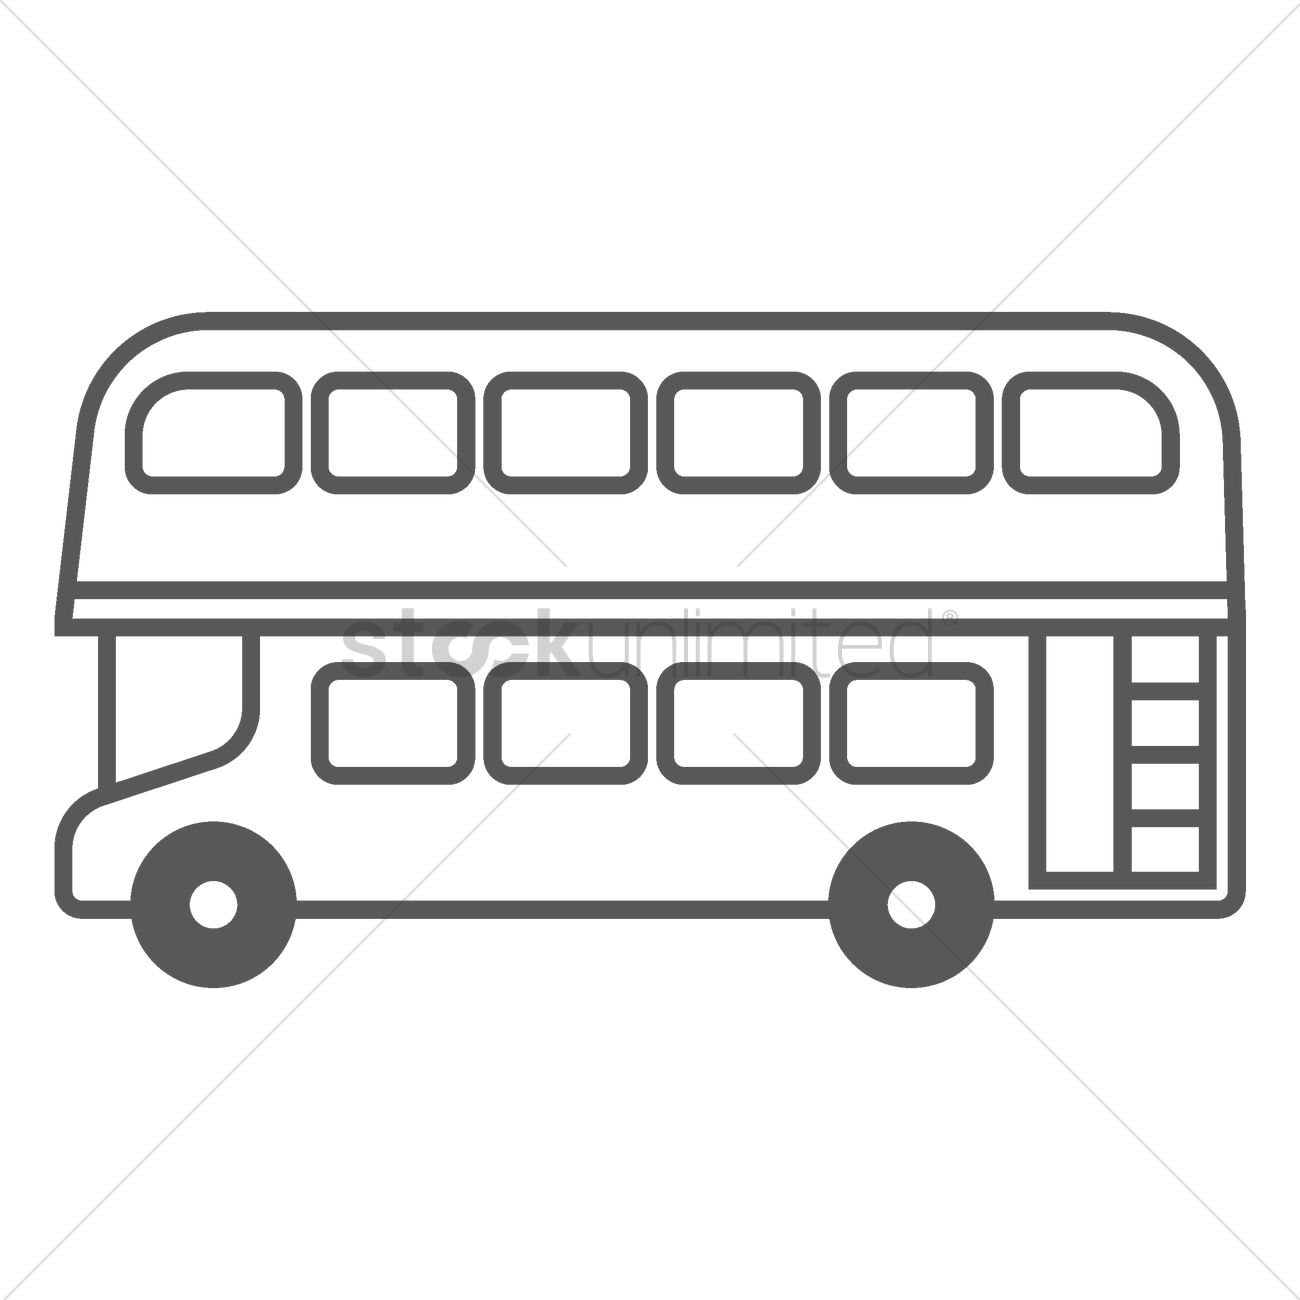 Double-decker bus Vector Image - 1574589 | StockUnlimited